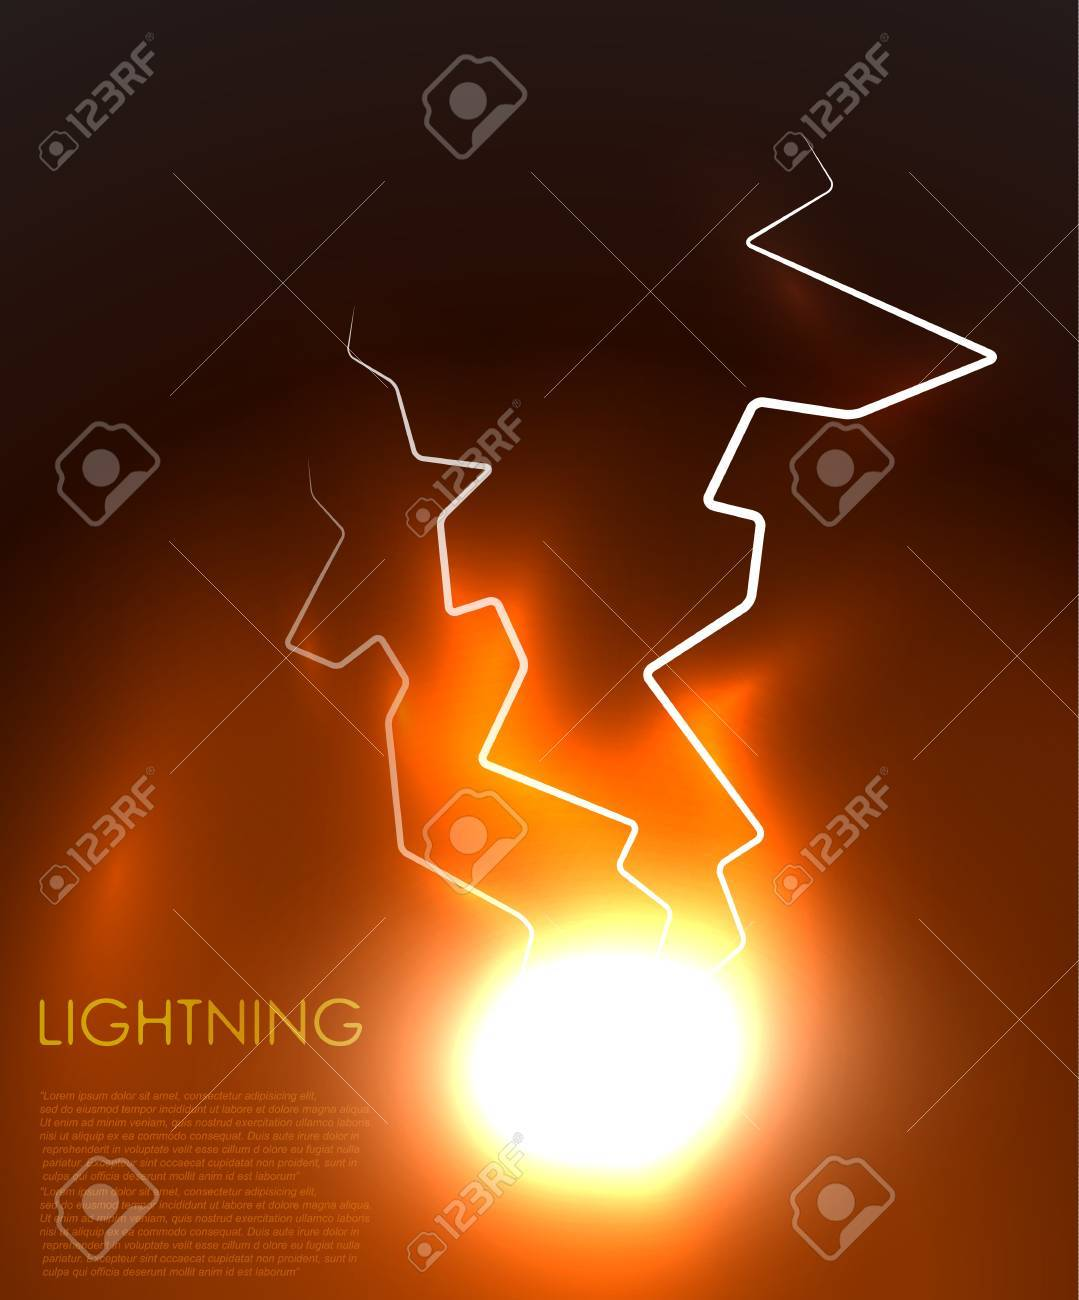 abstract lighning background Stock Vector - 12493645